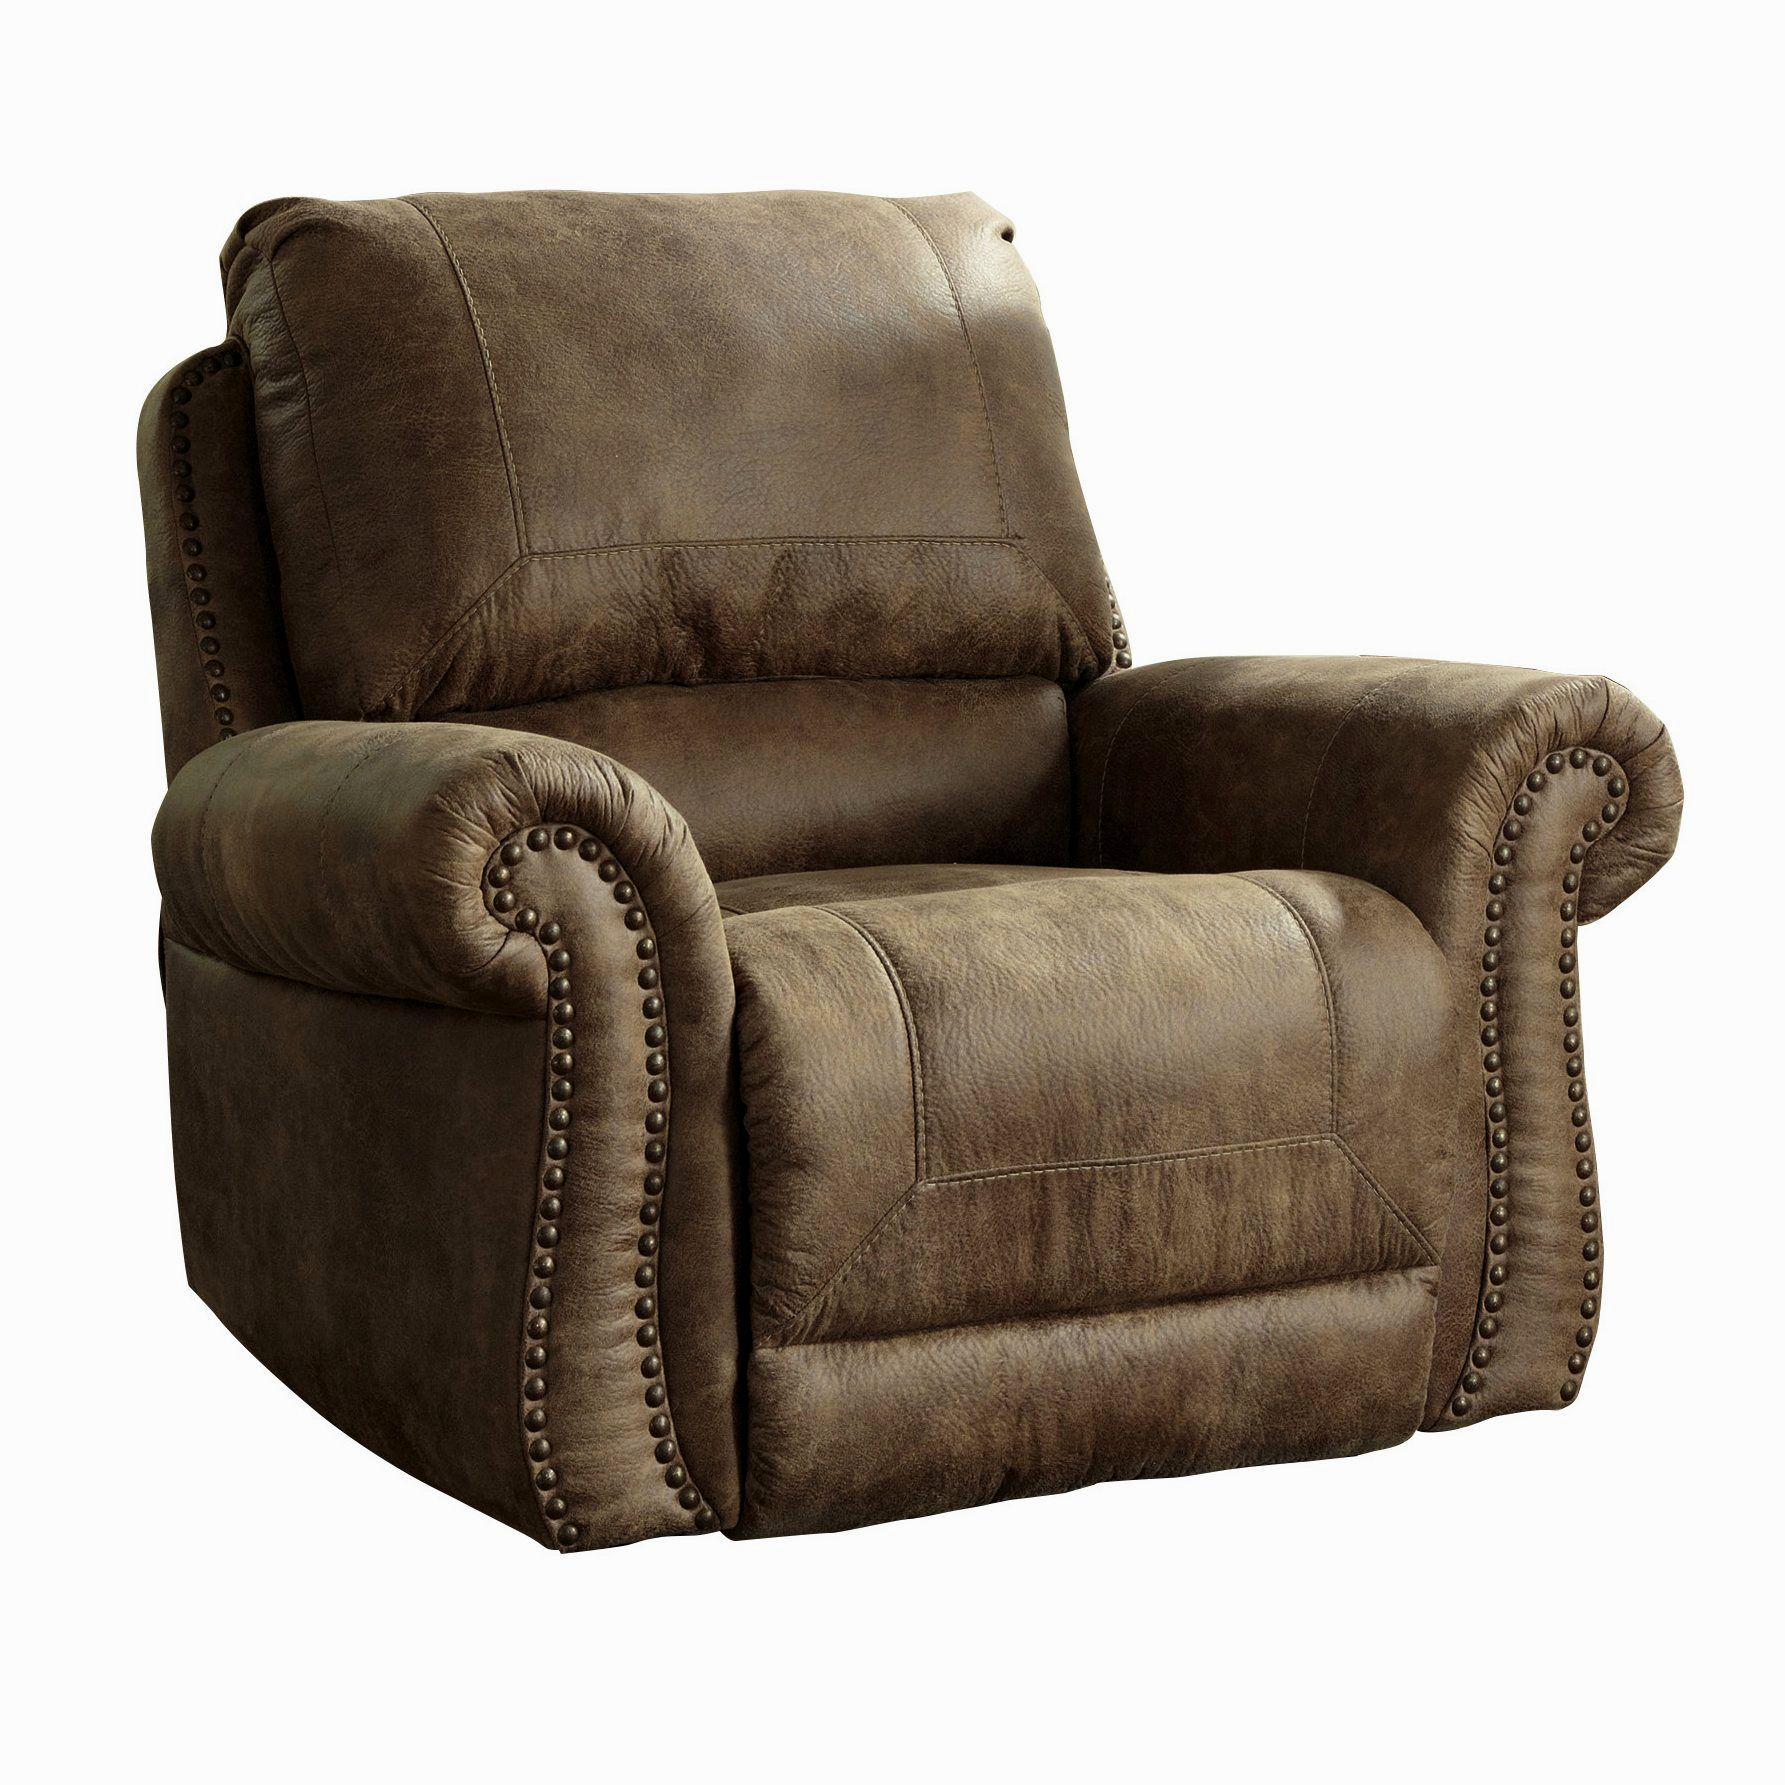 awesome pottery barn turner sofa online-Lovely Pottery Barn Turner sofa Wallpaper